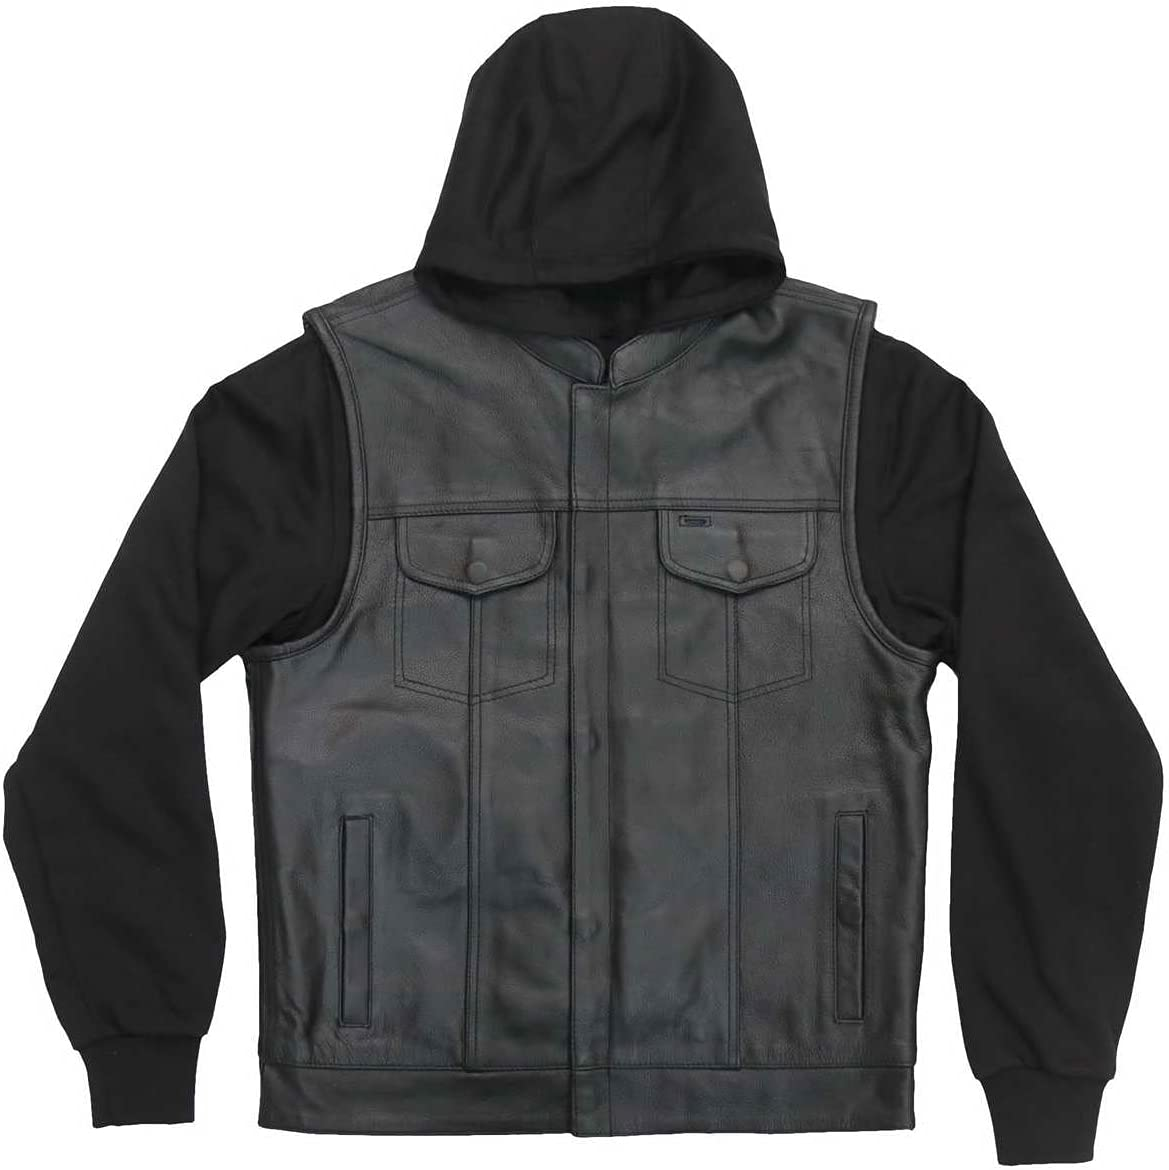 Hot Leathers VSM1202 Men's Black '2-in-1' Conceal and Carry Leather Vest with Hoodie - 3X-Large